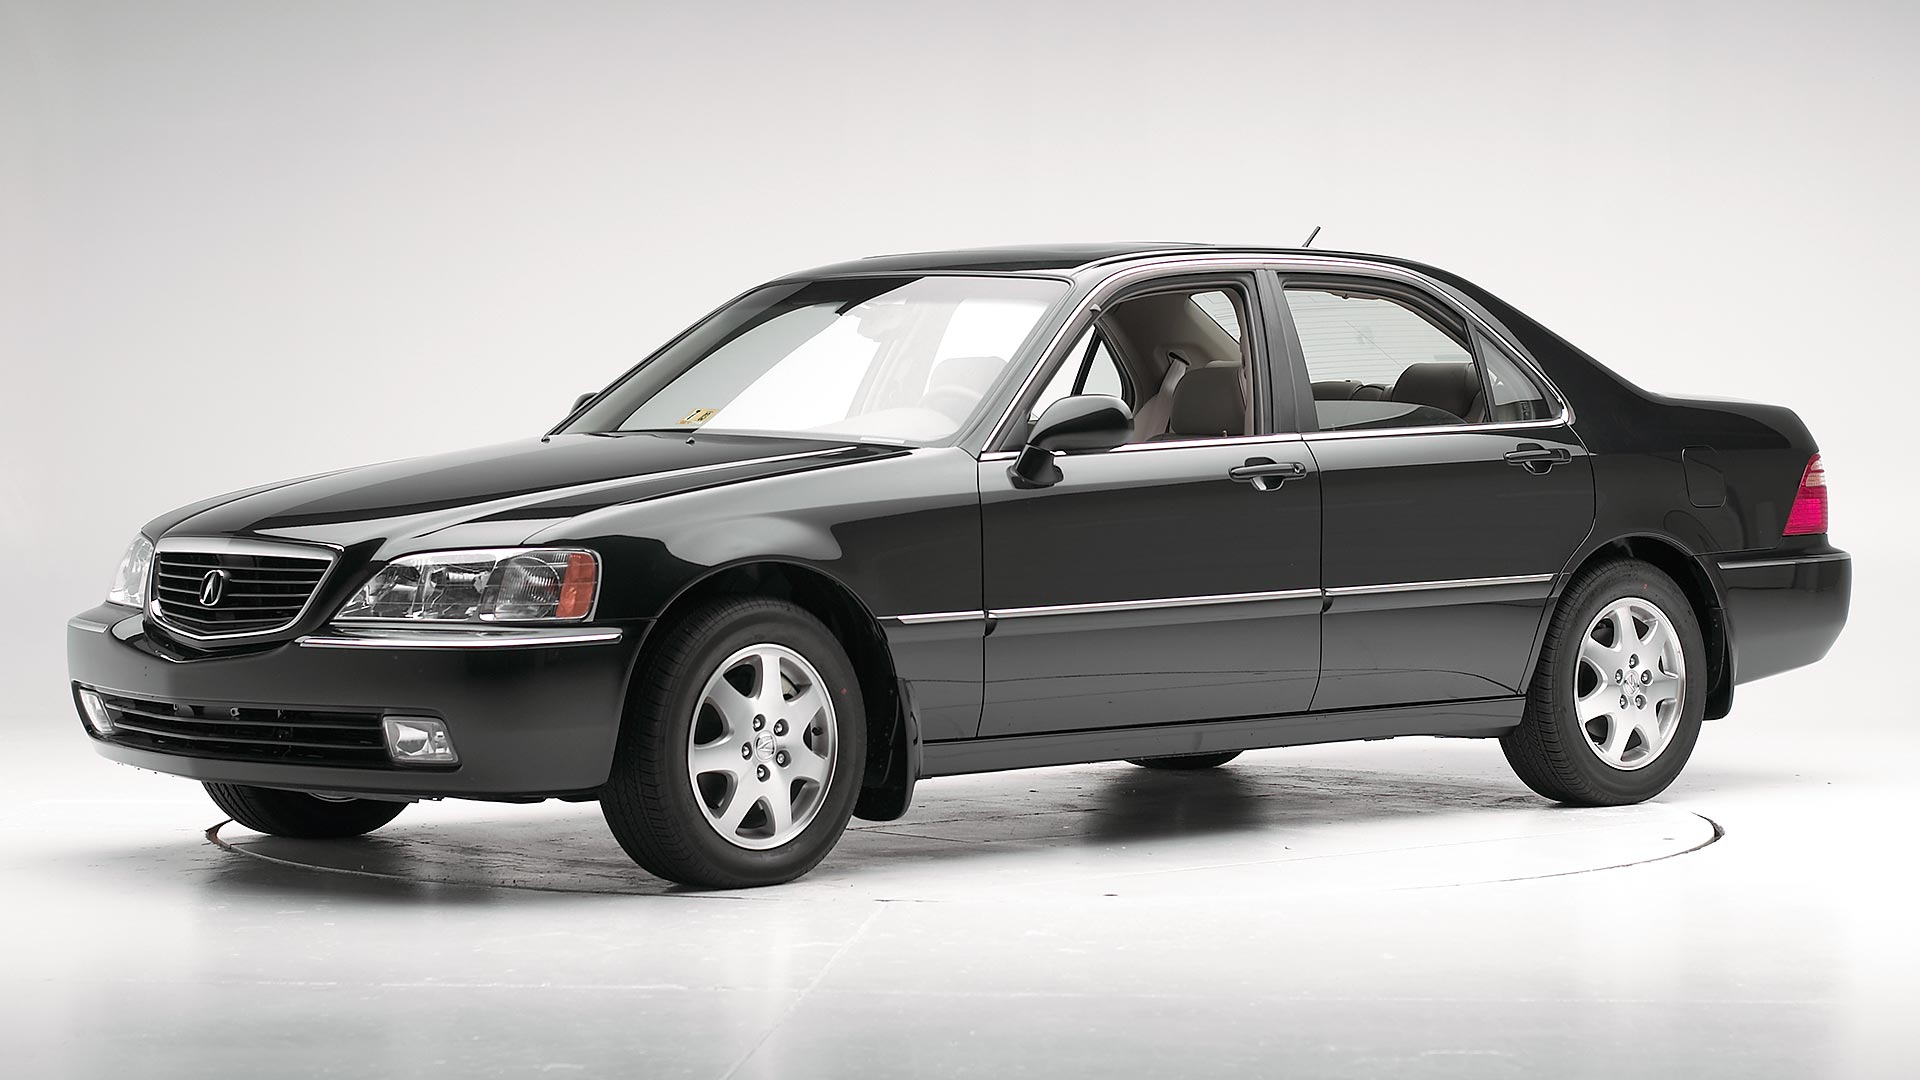 2002 Acura RL 4-door sedan